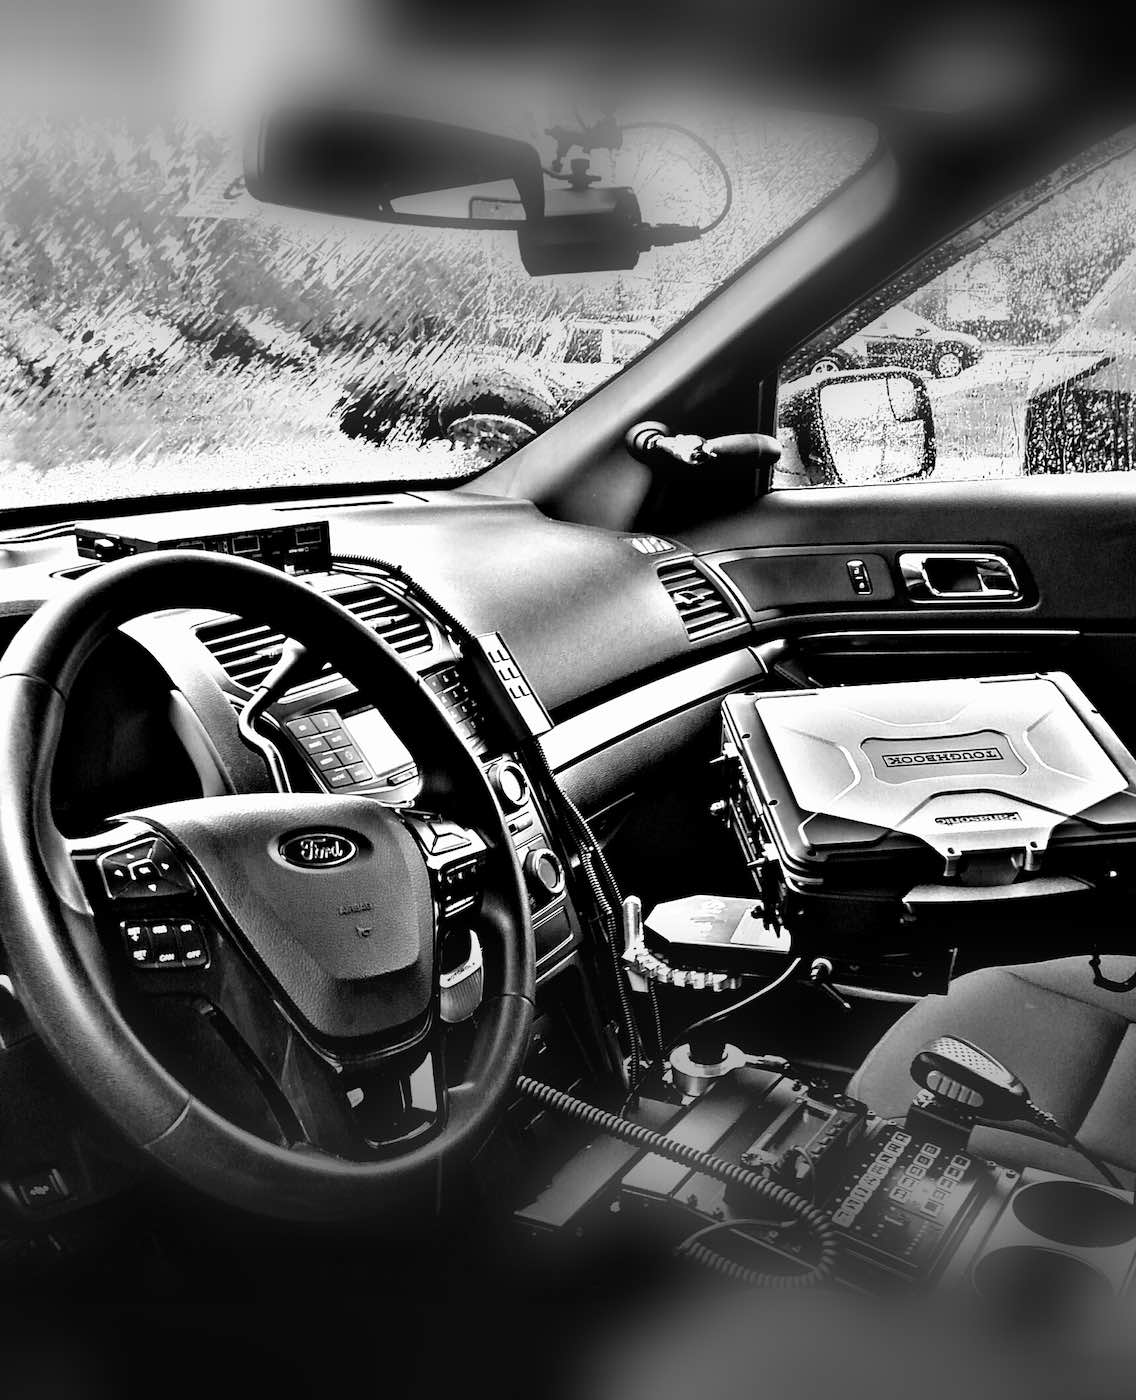 Black and white photo of the interior dashboard of a Police vehicle